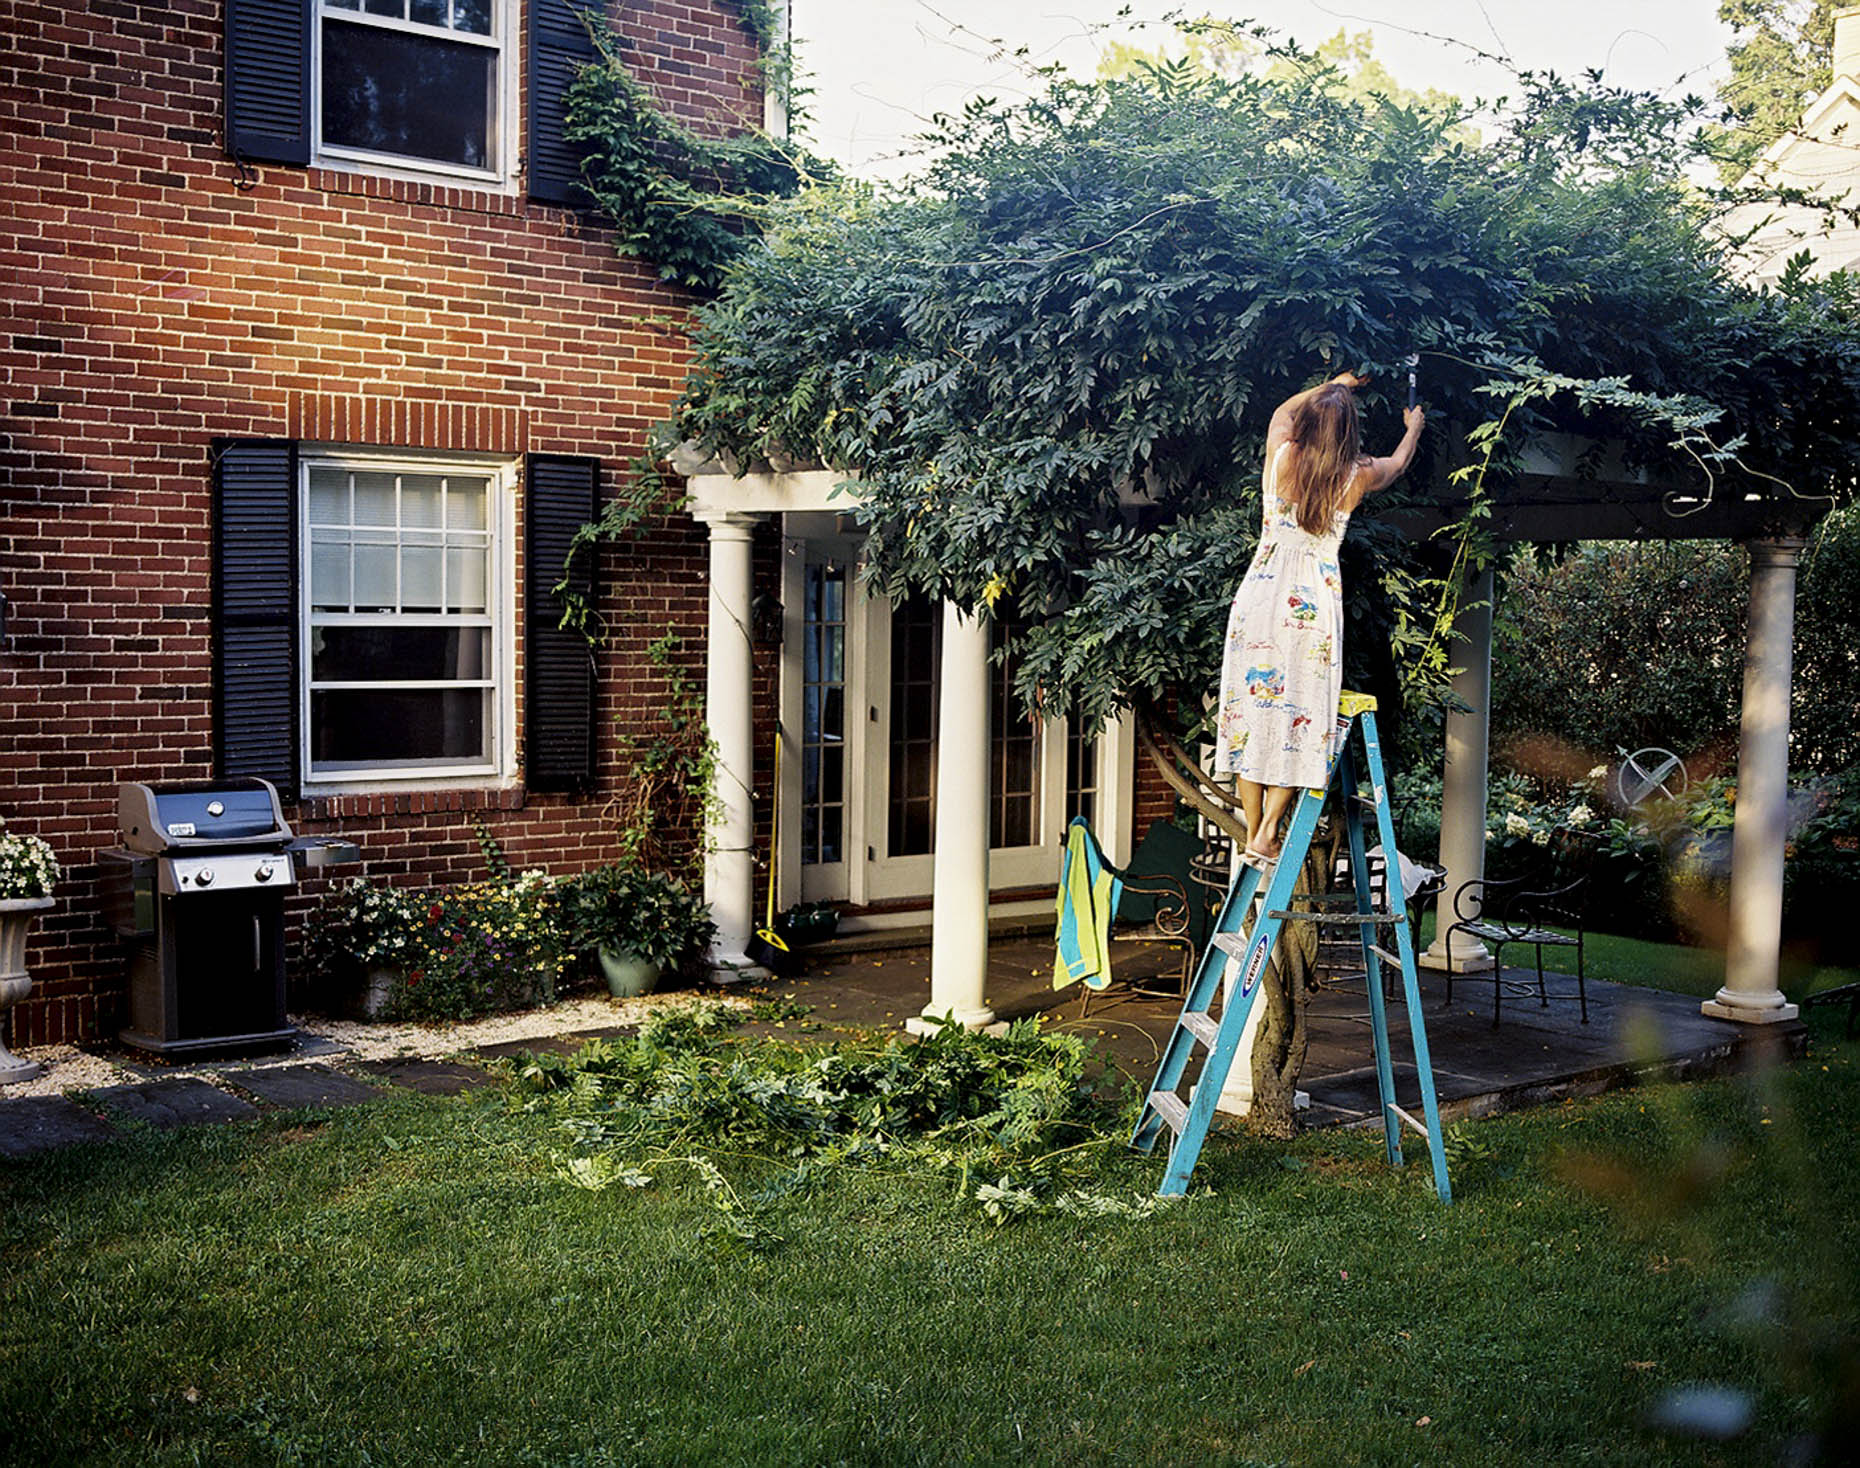 Trimming the Wisteria